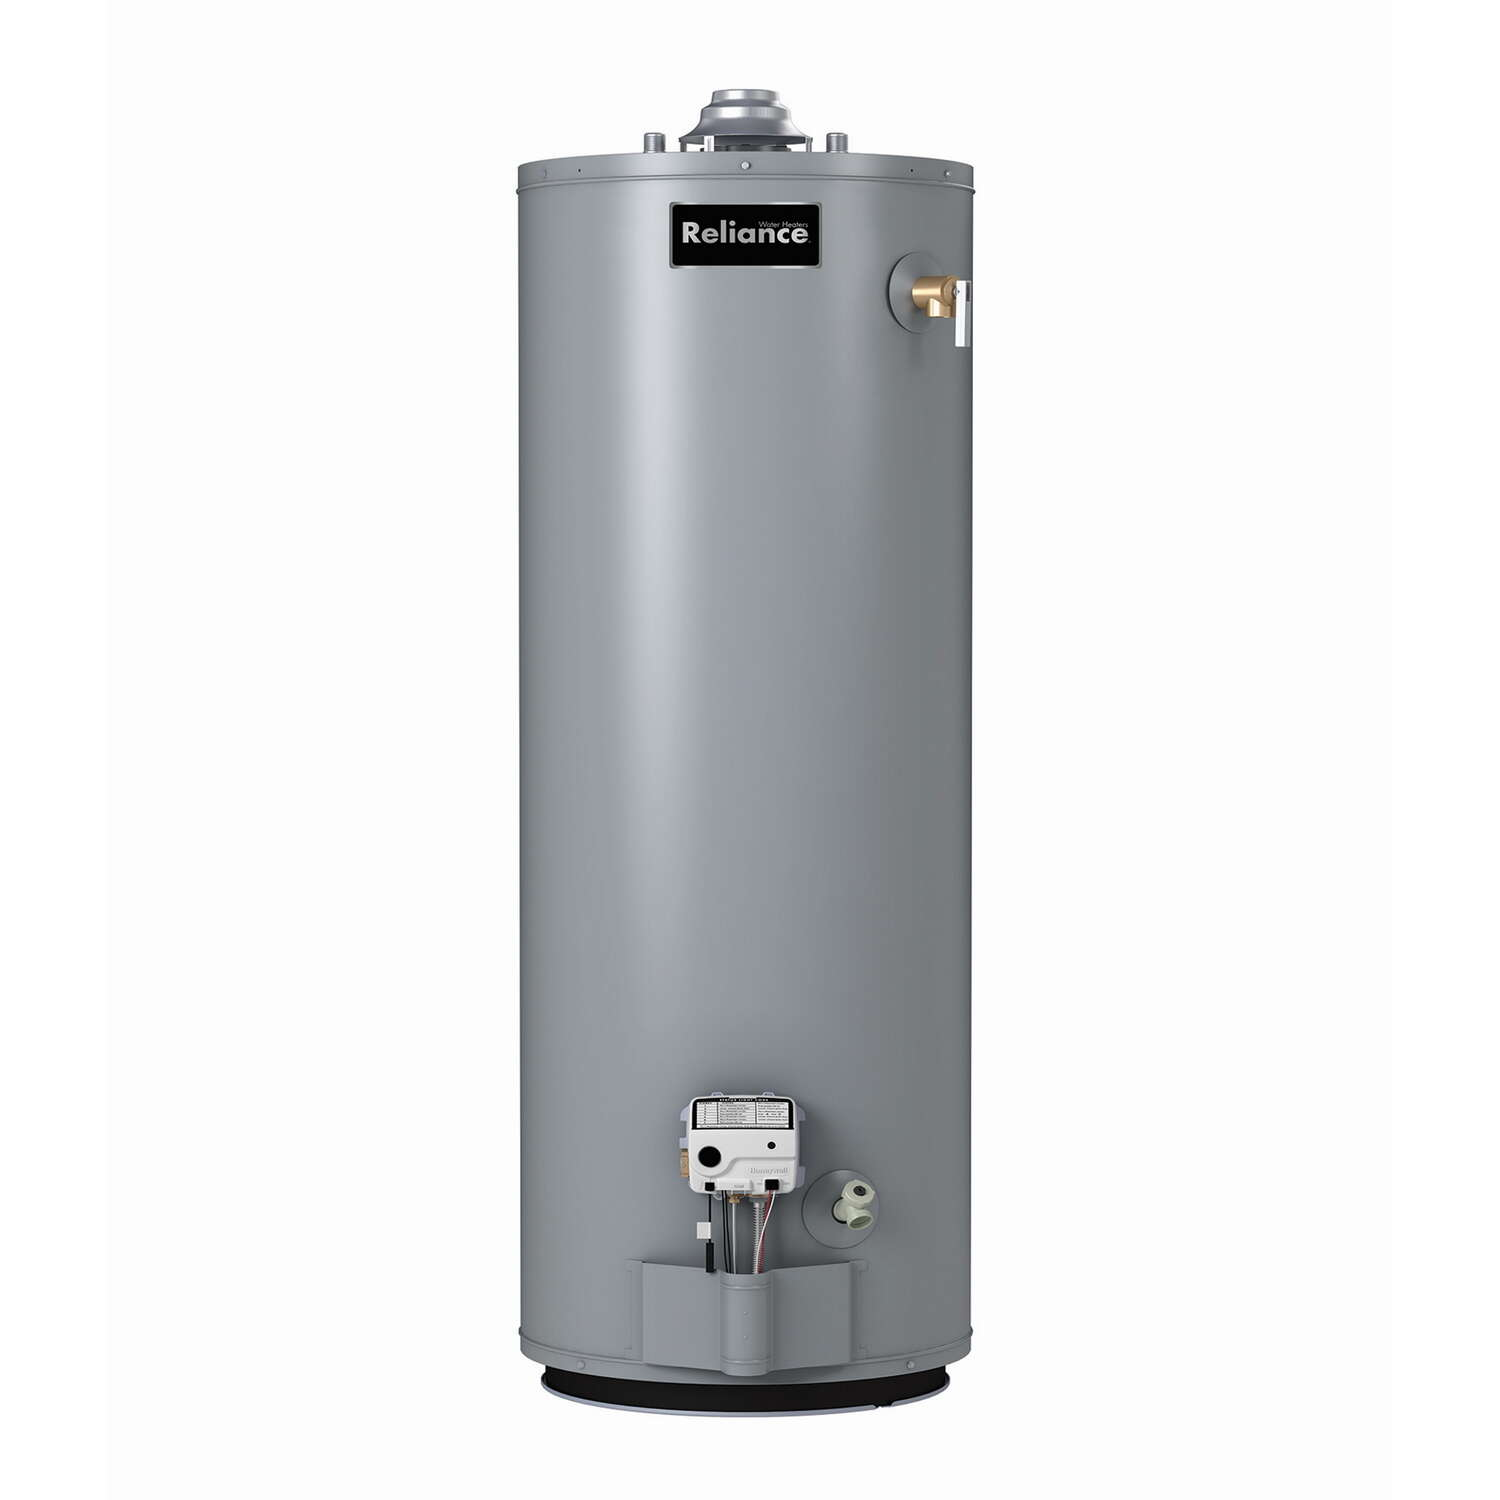 Reliance 40 gal. 35500 BTU Natural Gas Water Heater